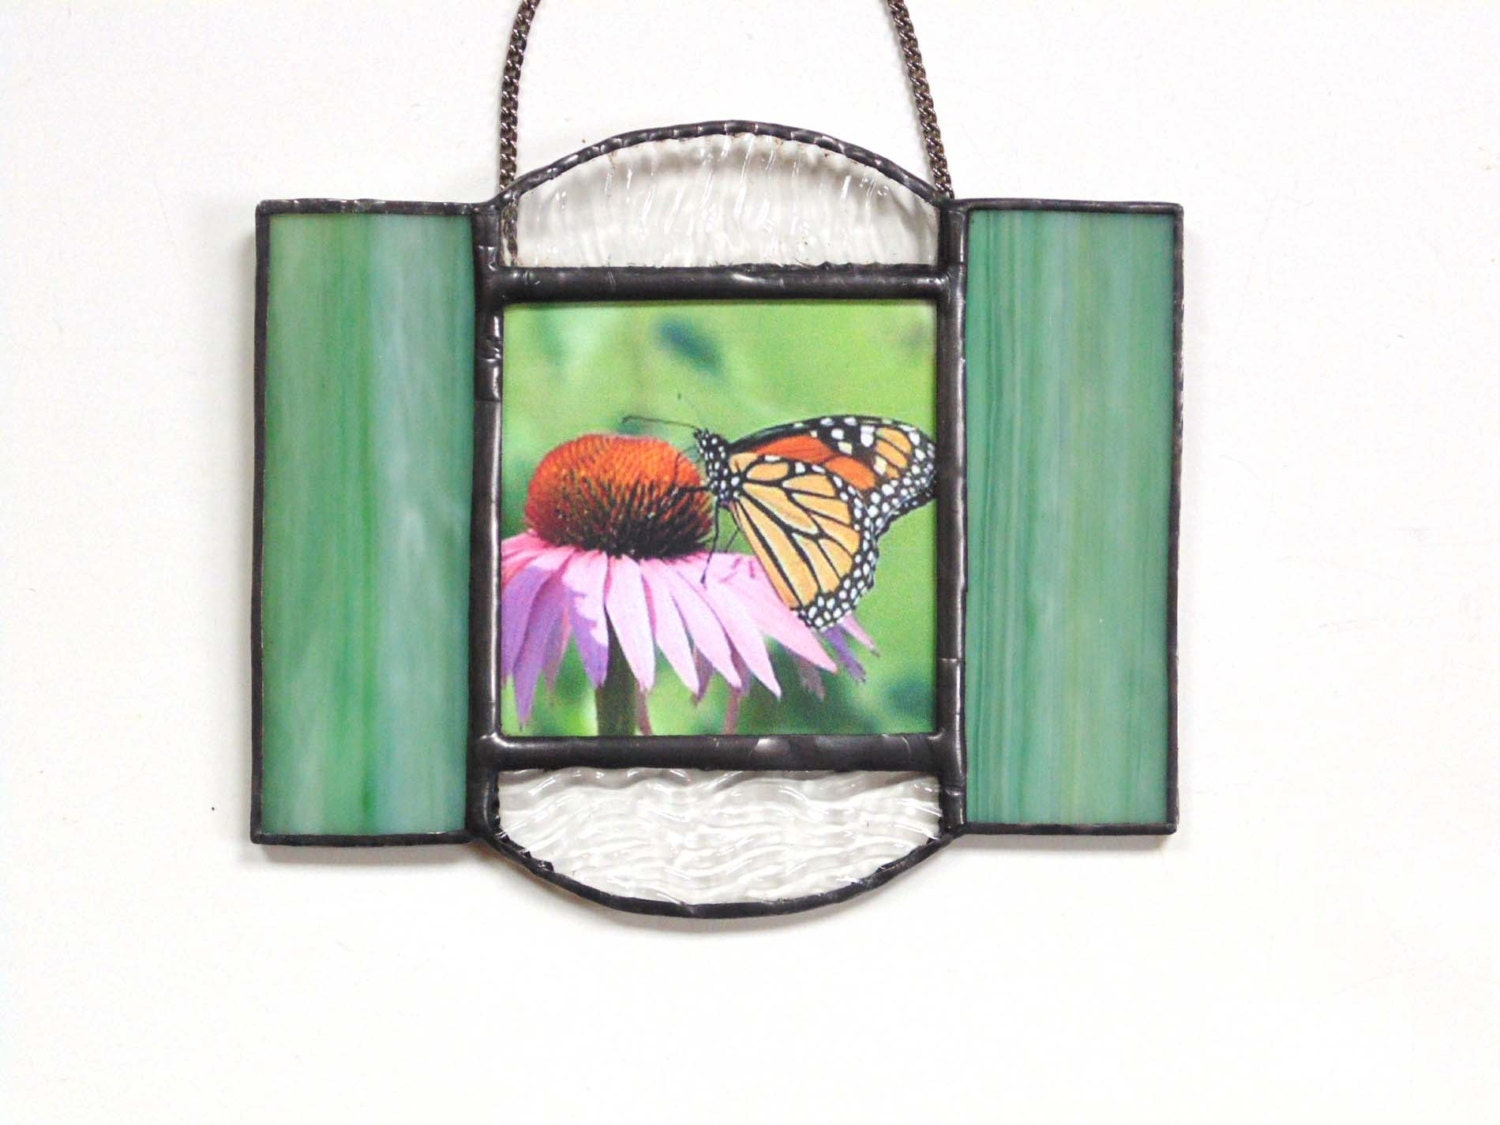 Wall Decor Under 20 : Stained glass flower wall art gift under nature butterfly